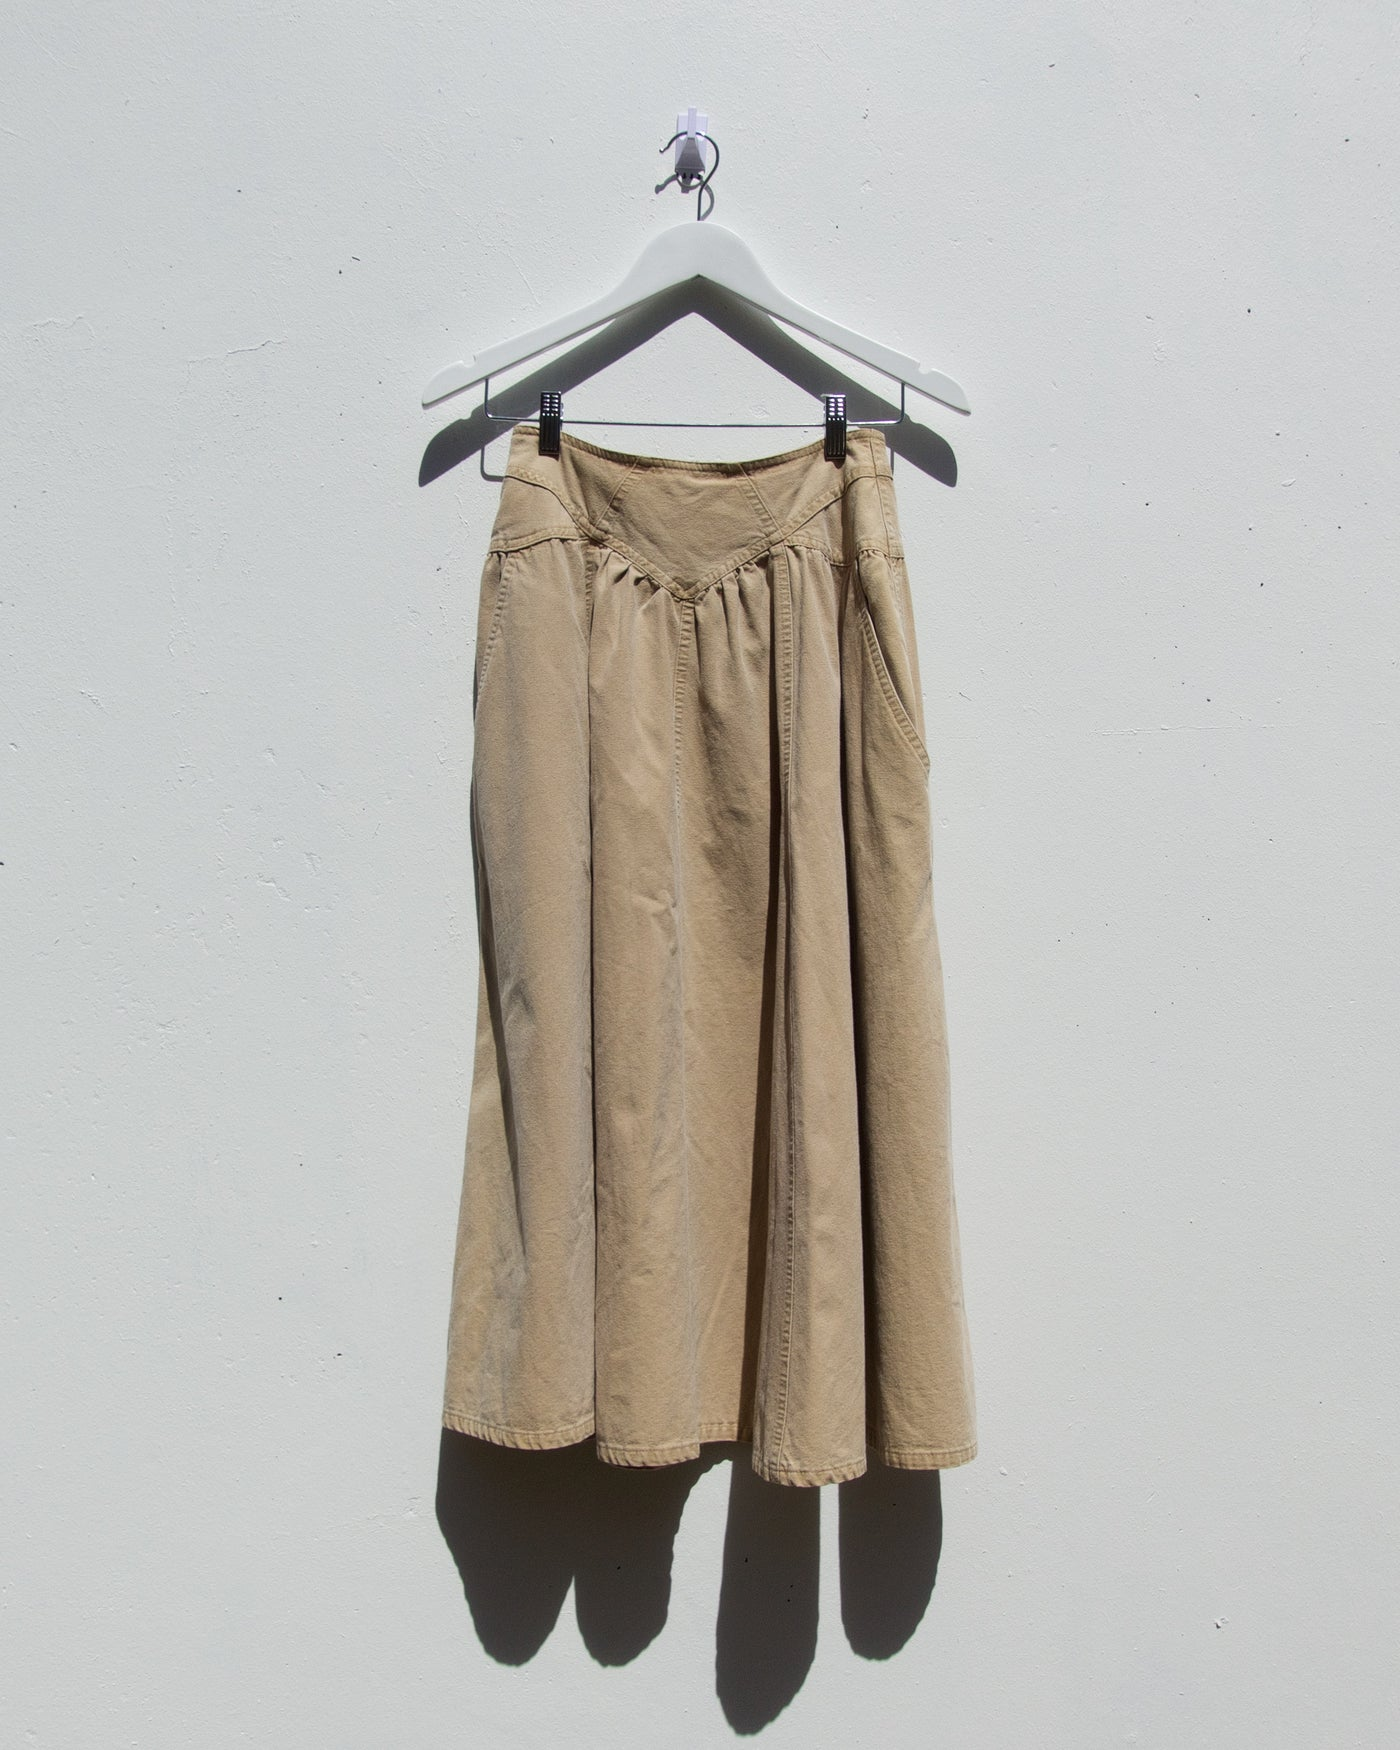 Vintage Denim Tan Circle Skirt - Size 6-8